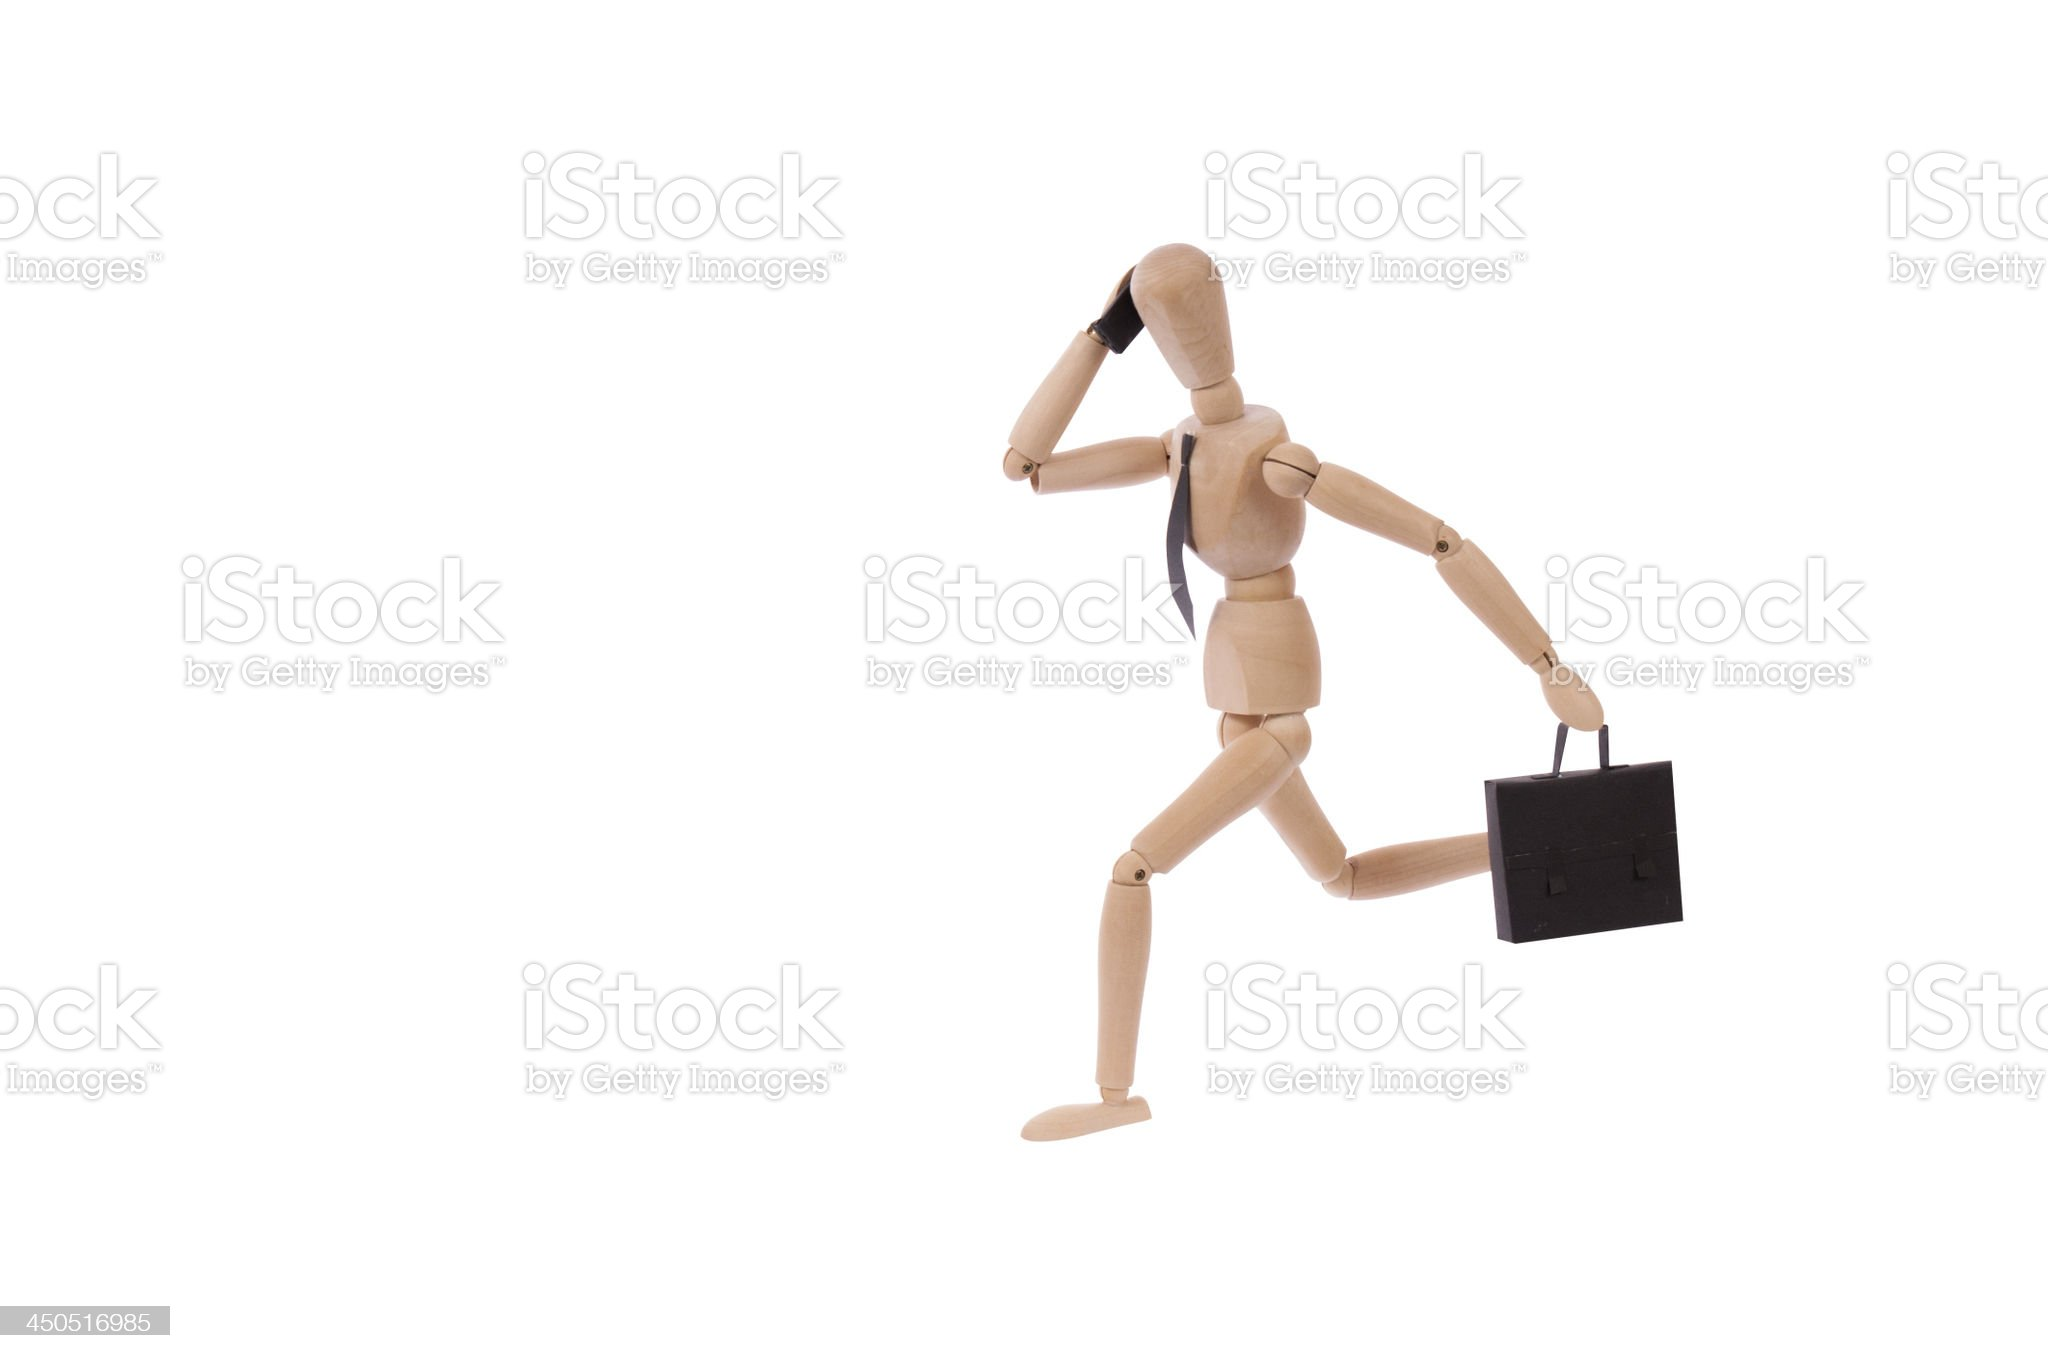 bussiness man running talking on his cell phone with clippingpath royalty-free stock photo